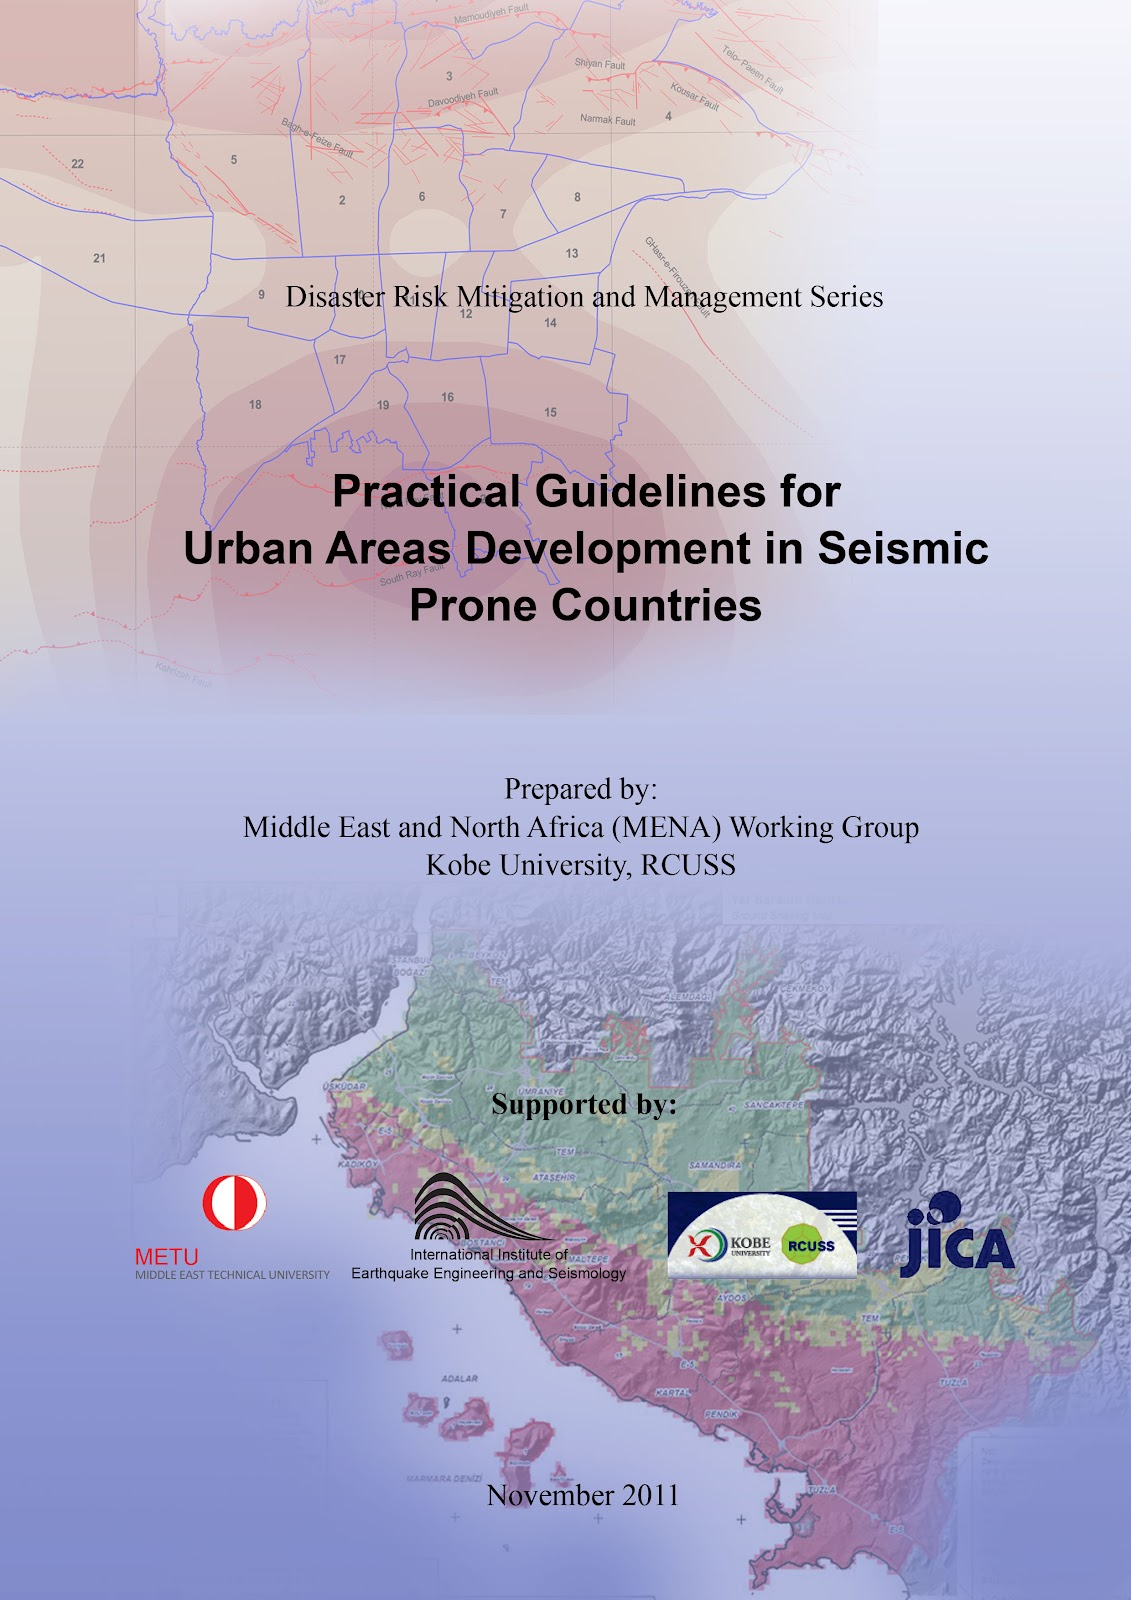 PRACTICAL GUIDELINES FOR URBAN AREAS DEVELOPMENT IN SEISMIC PRONE COUNTRIES